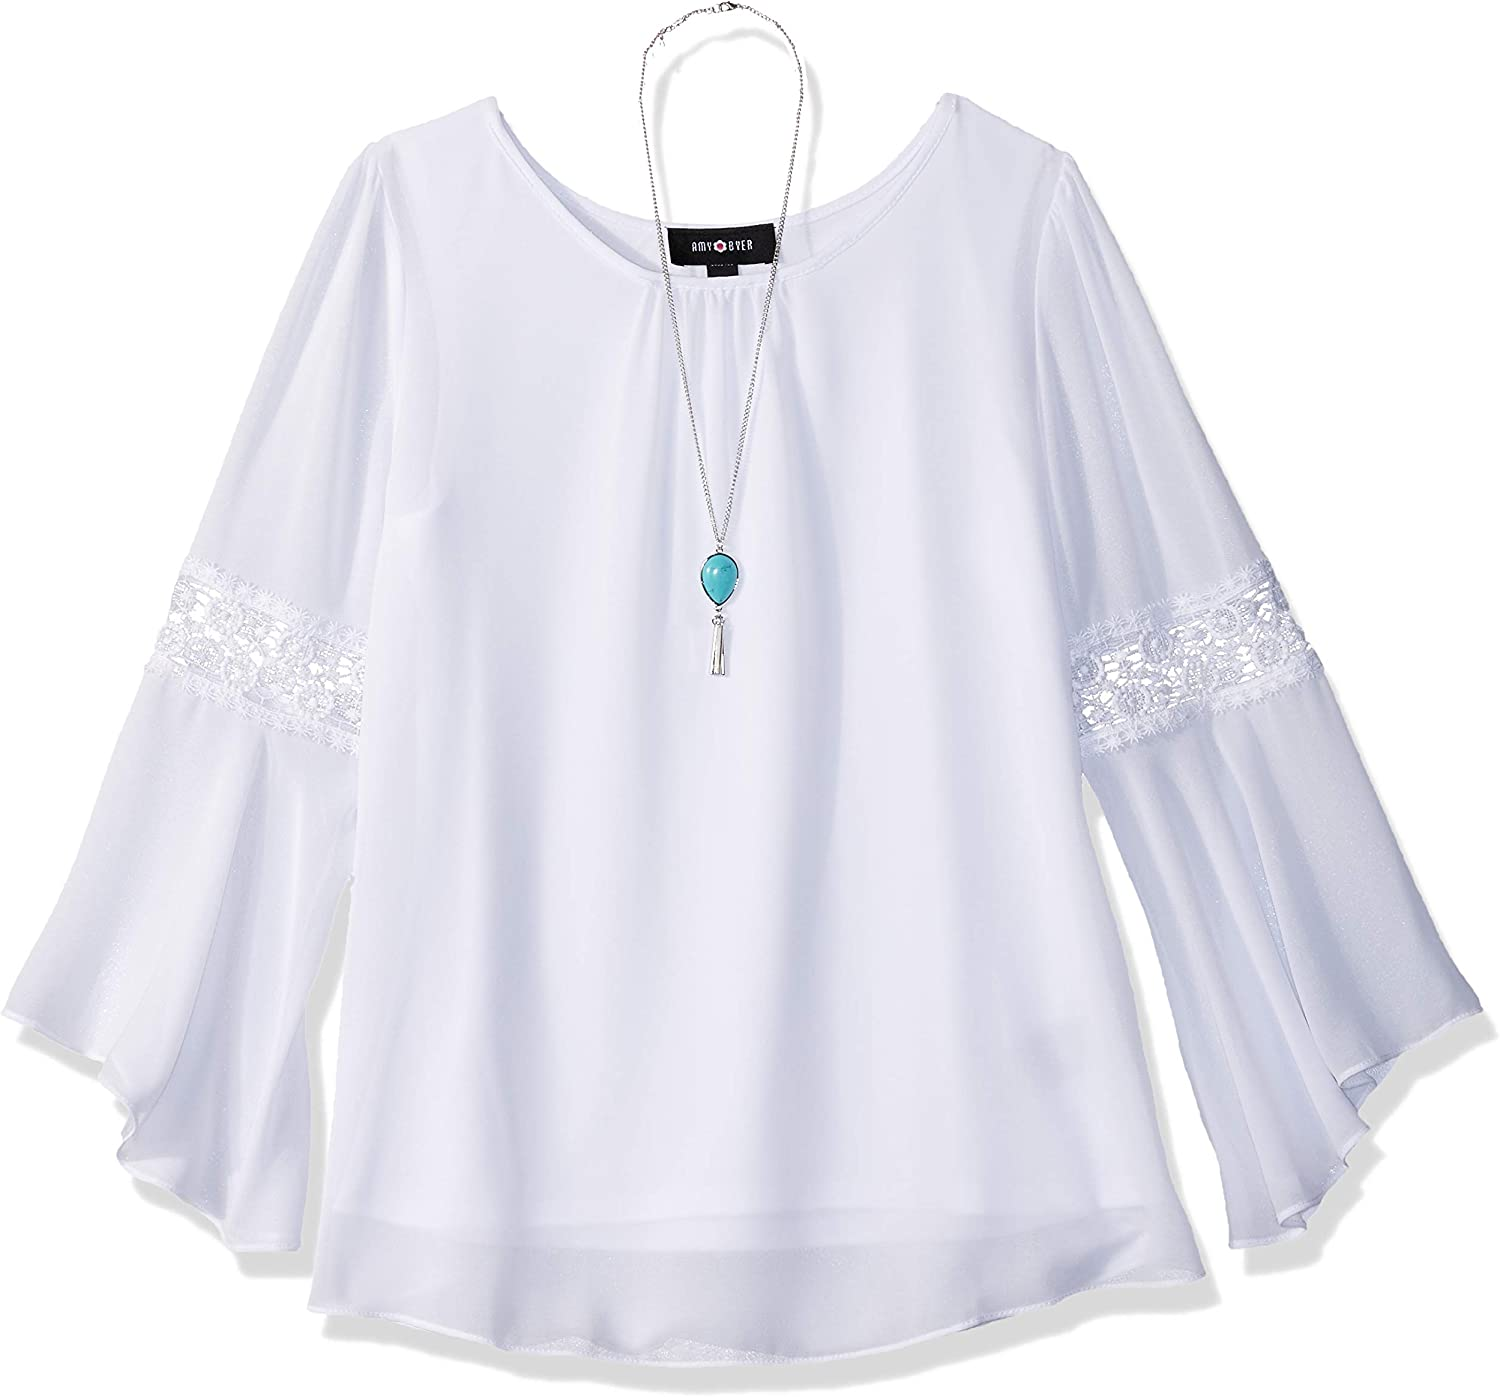 LADIES//WOMEN/'S PARTY LACE COLLAR TOP,blouse TEAL COLOUR W 05 SIZE 12 /& 16 CODE